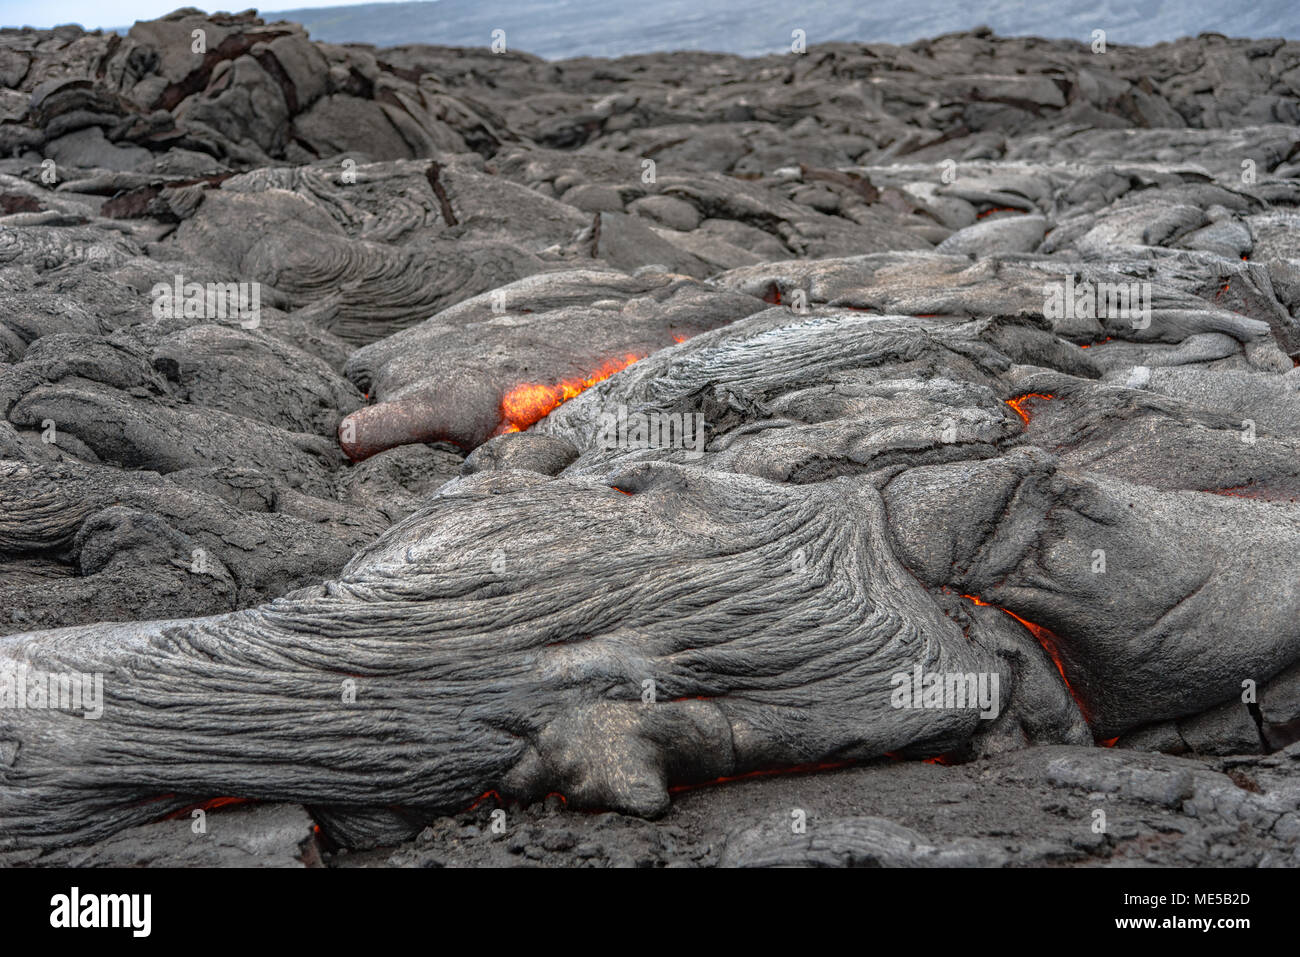 Lava flowing at the Kalapana Lava Field on the Island of Hawaii - Stock Image